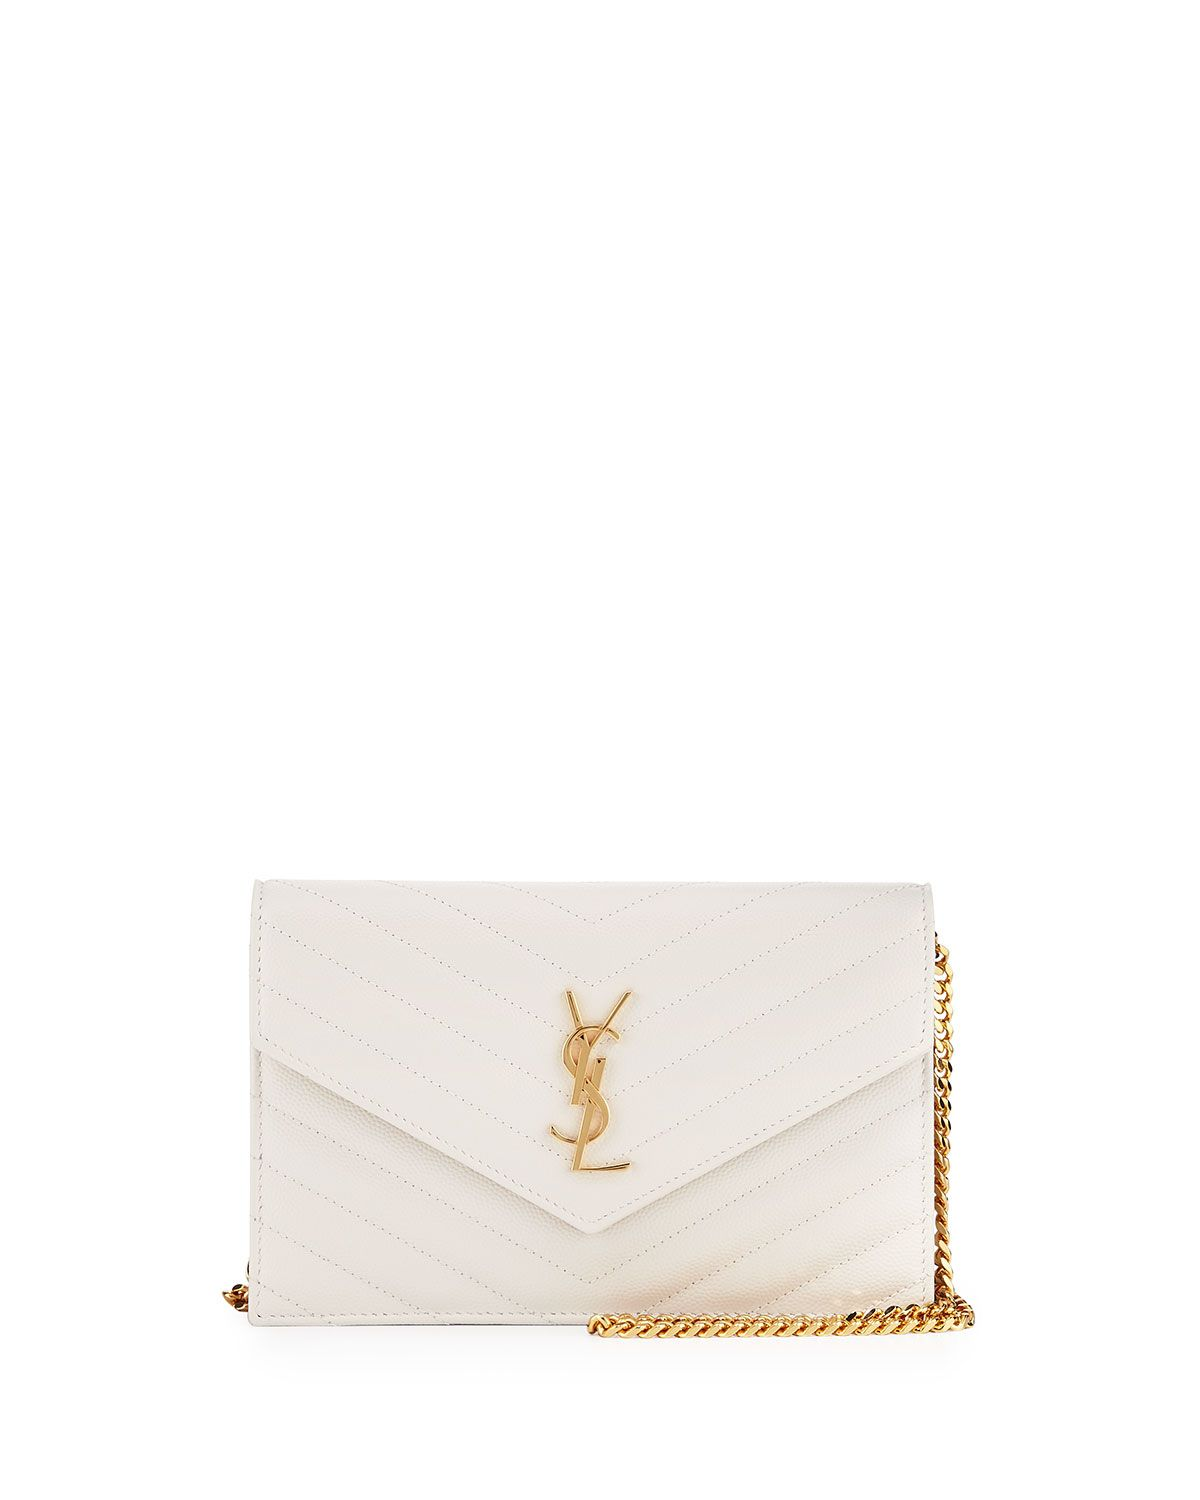 b78a5fe1 Monogram Small Matelassé Envelope Chain Wallet White in 2019 ...